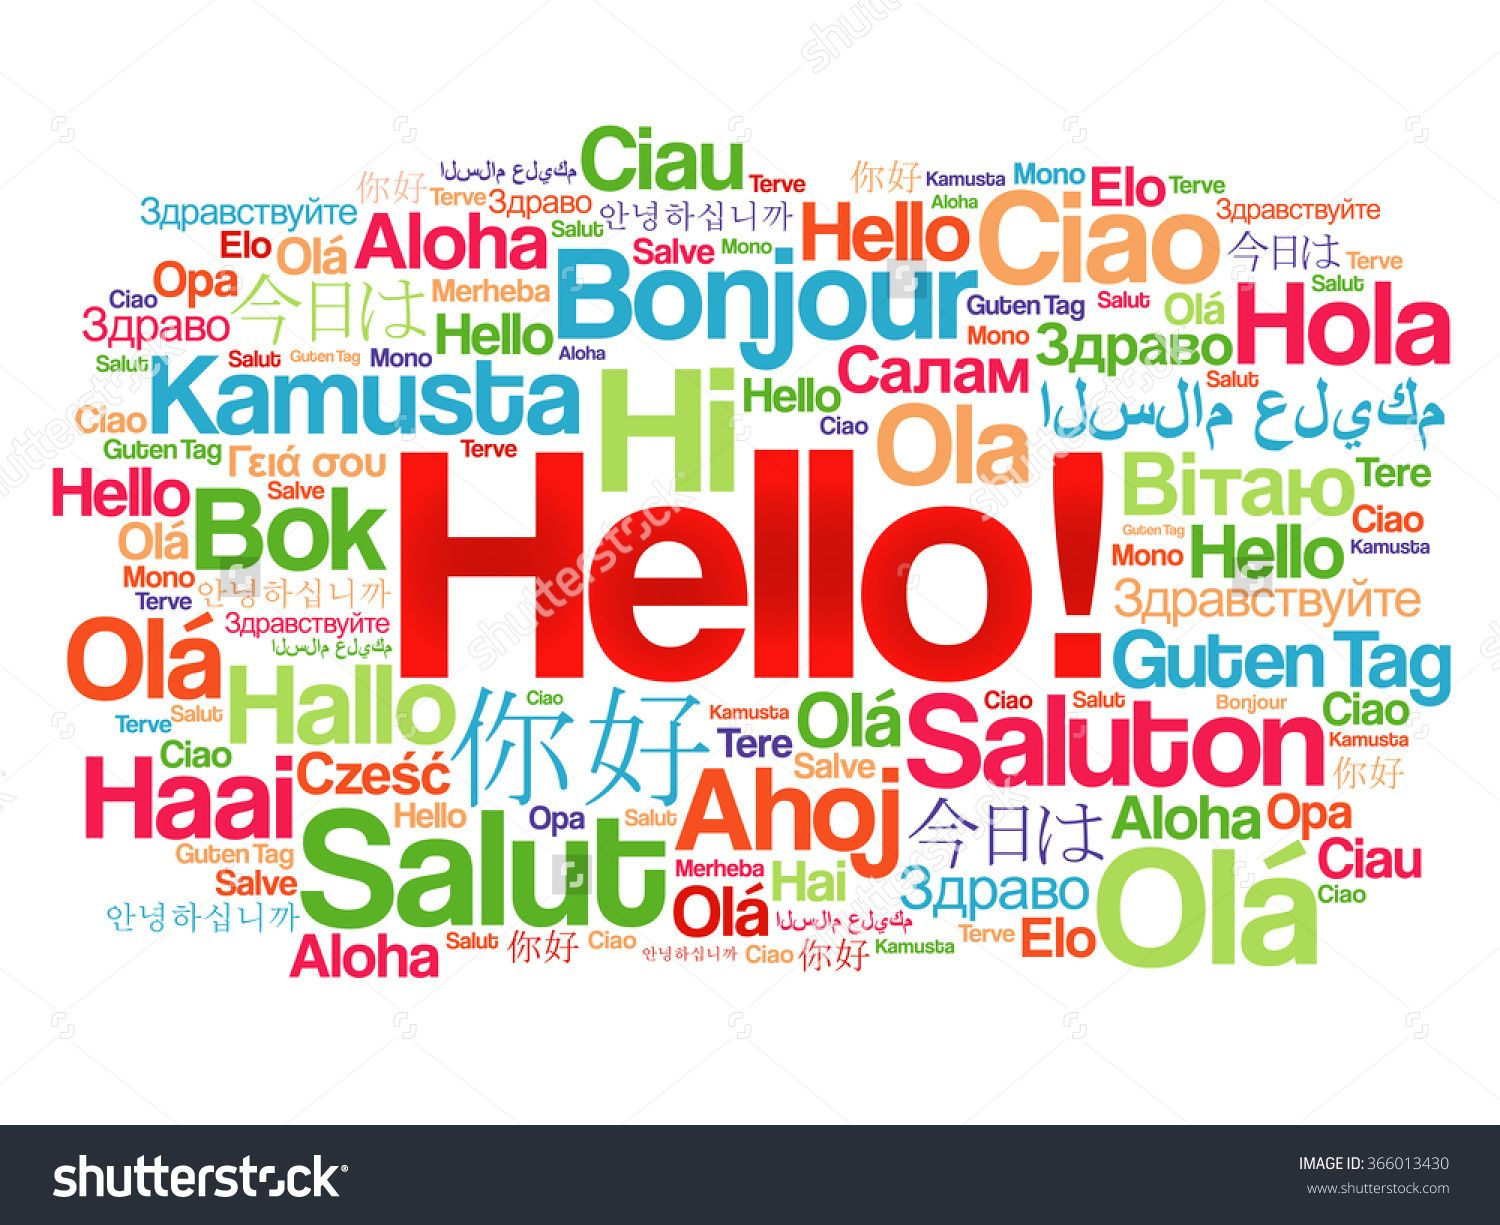 hello translated in different languages - Google Search